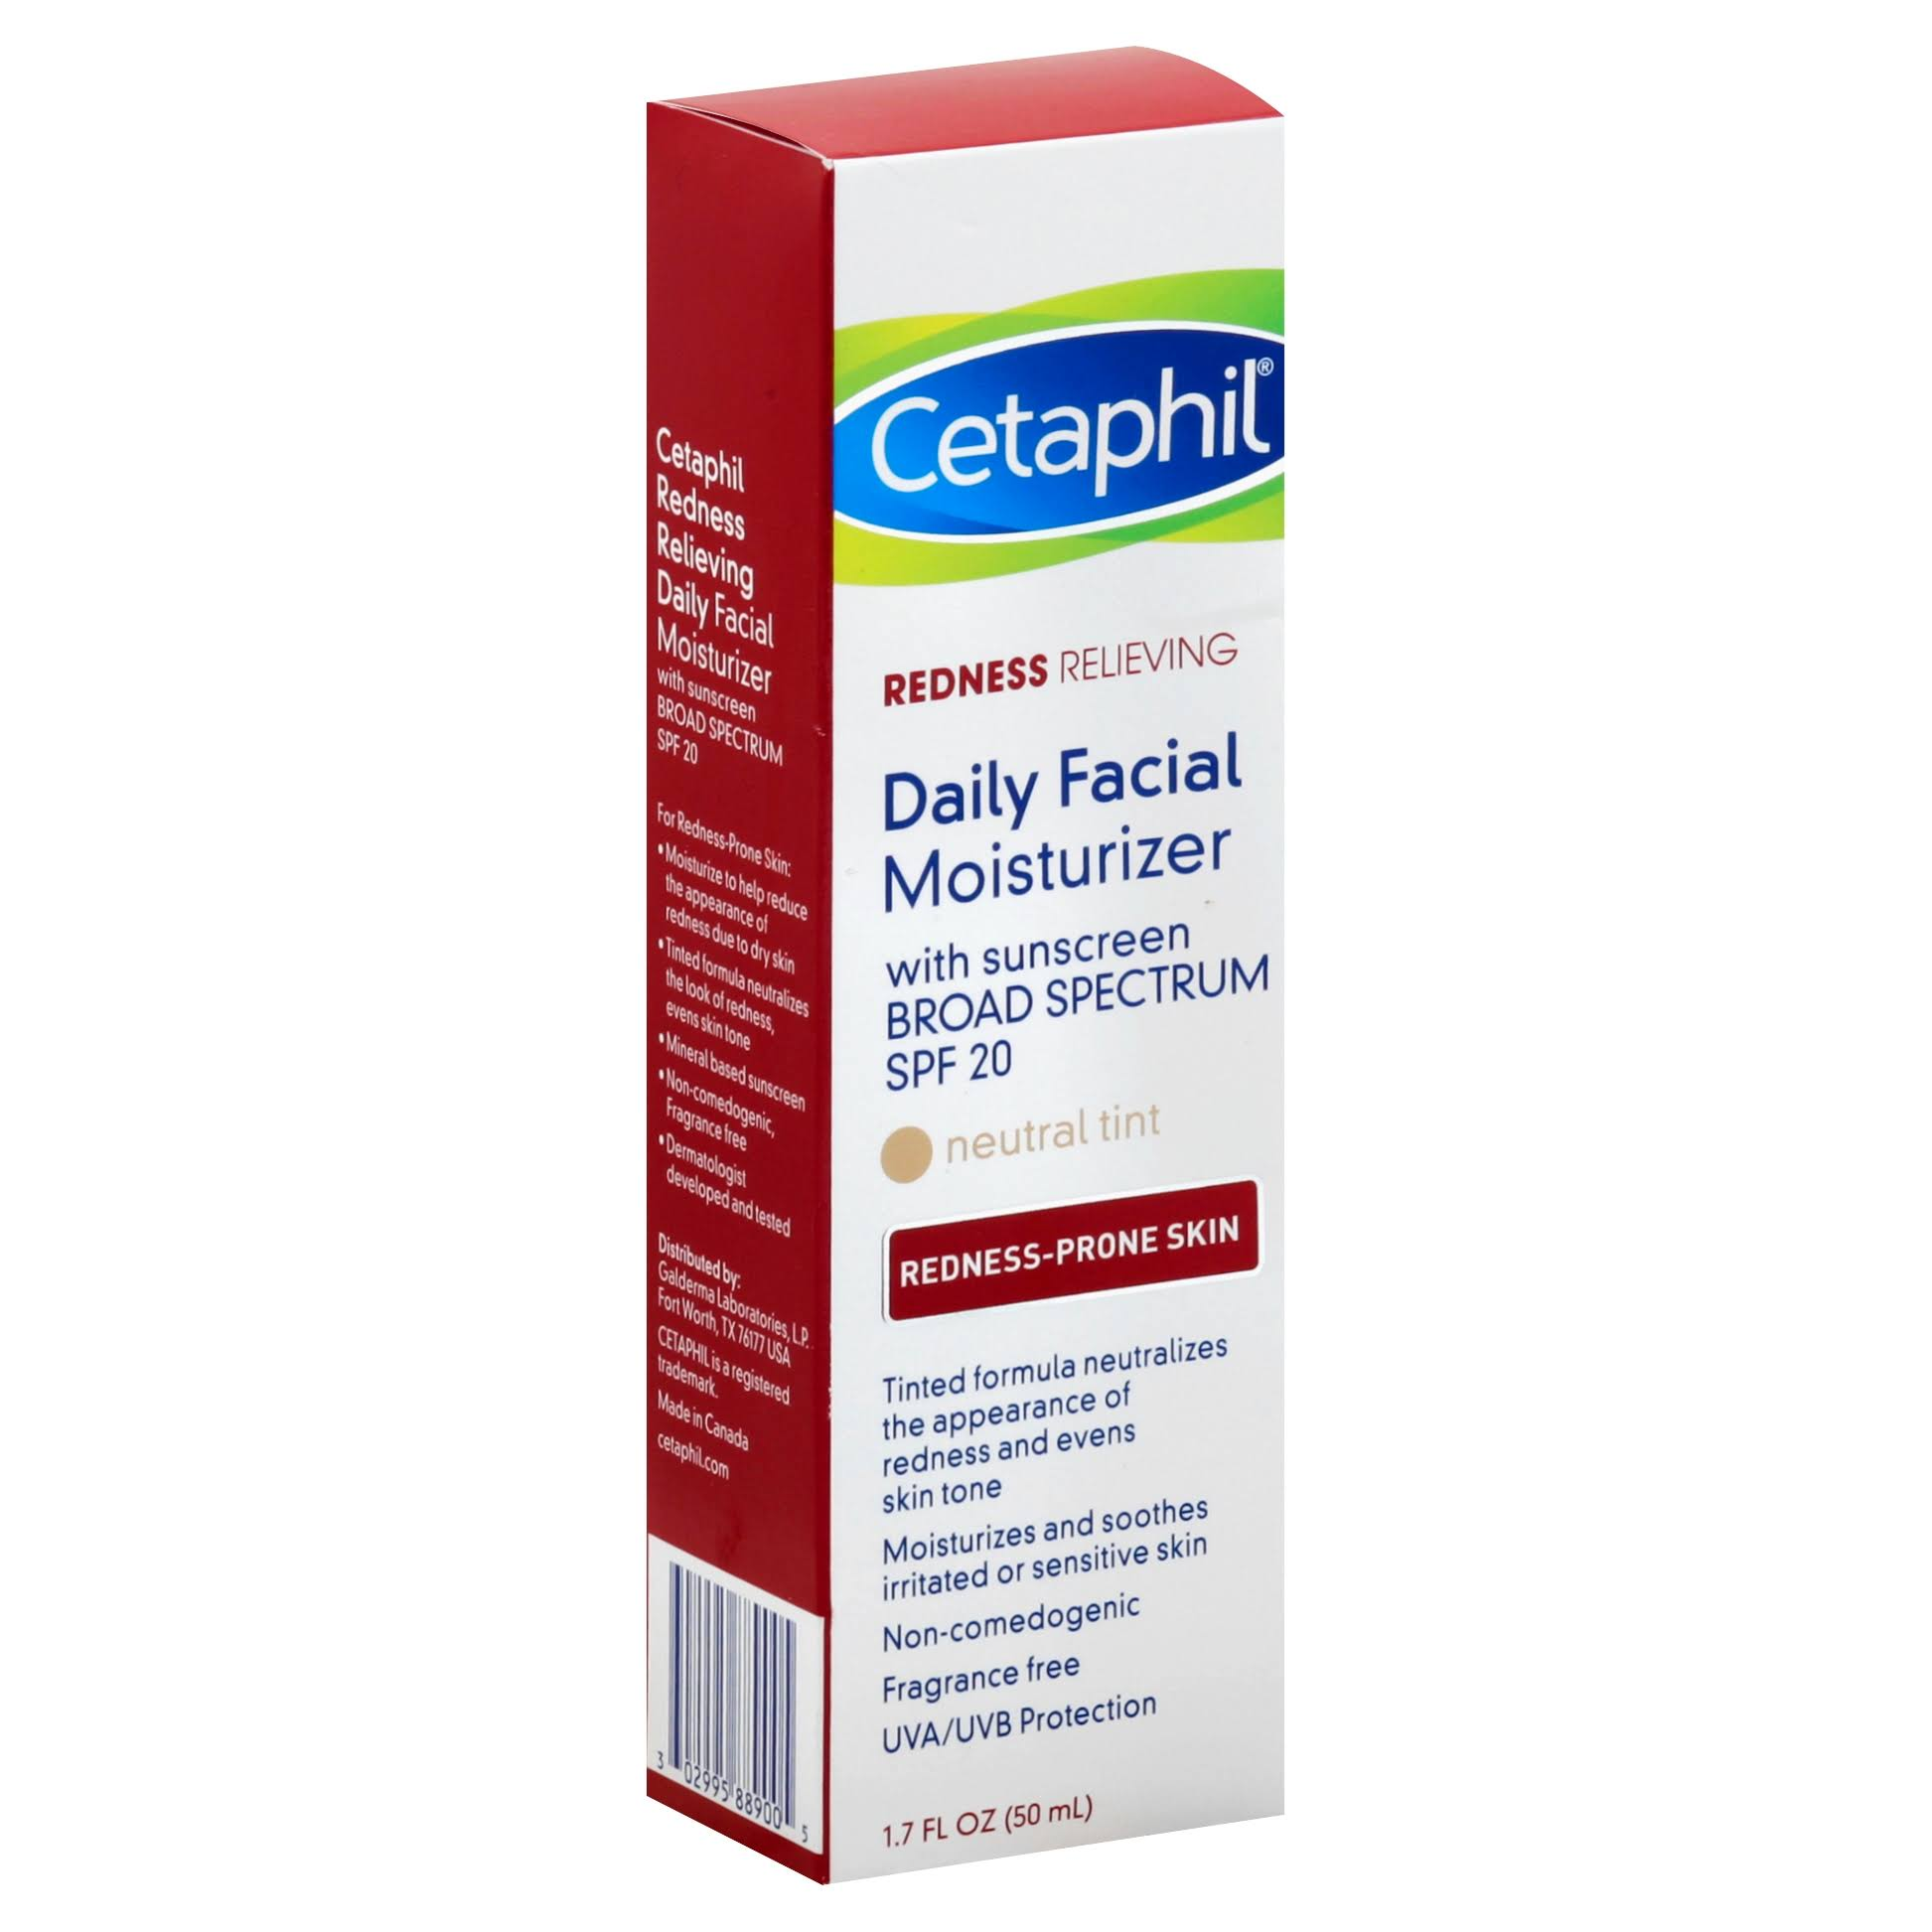 Cetaphil Redness Relieving SPF 20 Daily Facial Moisturizer - with Sunscreen Broad Spectrum, 1.7oz